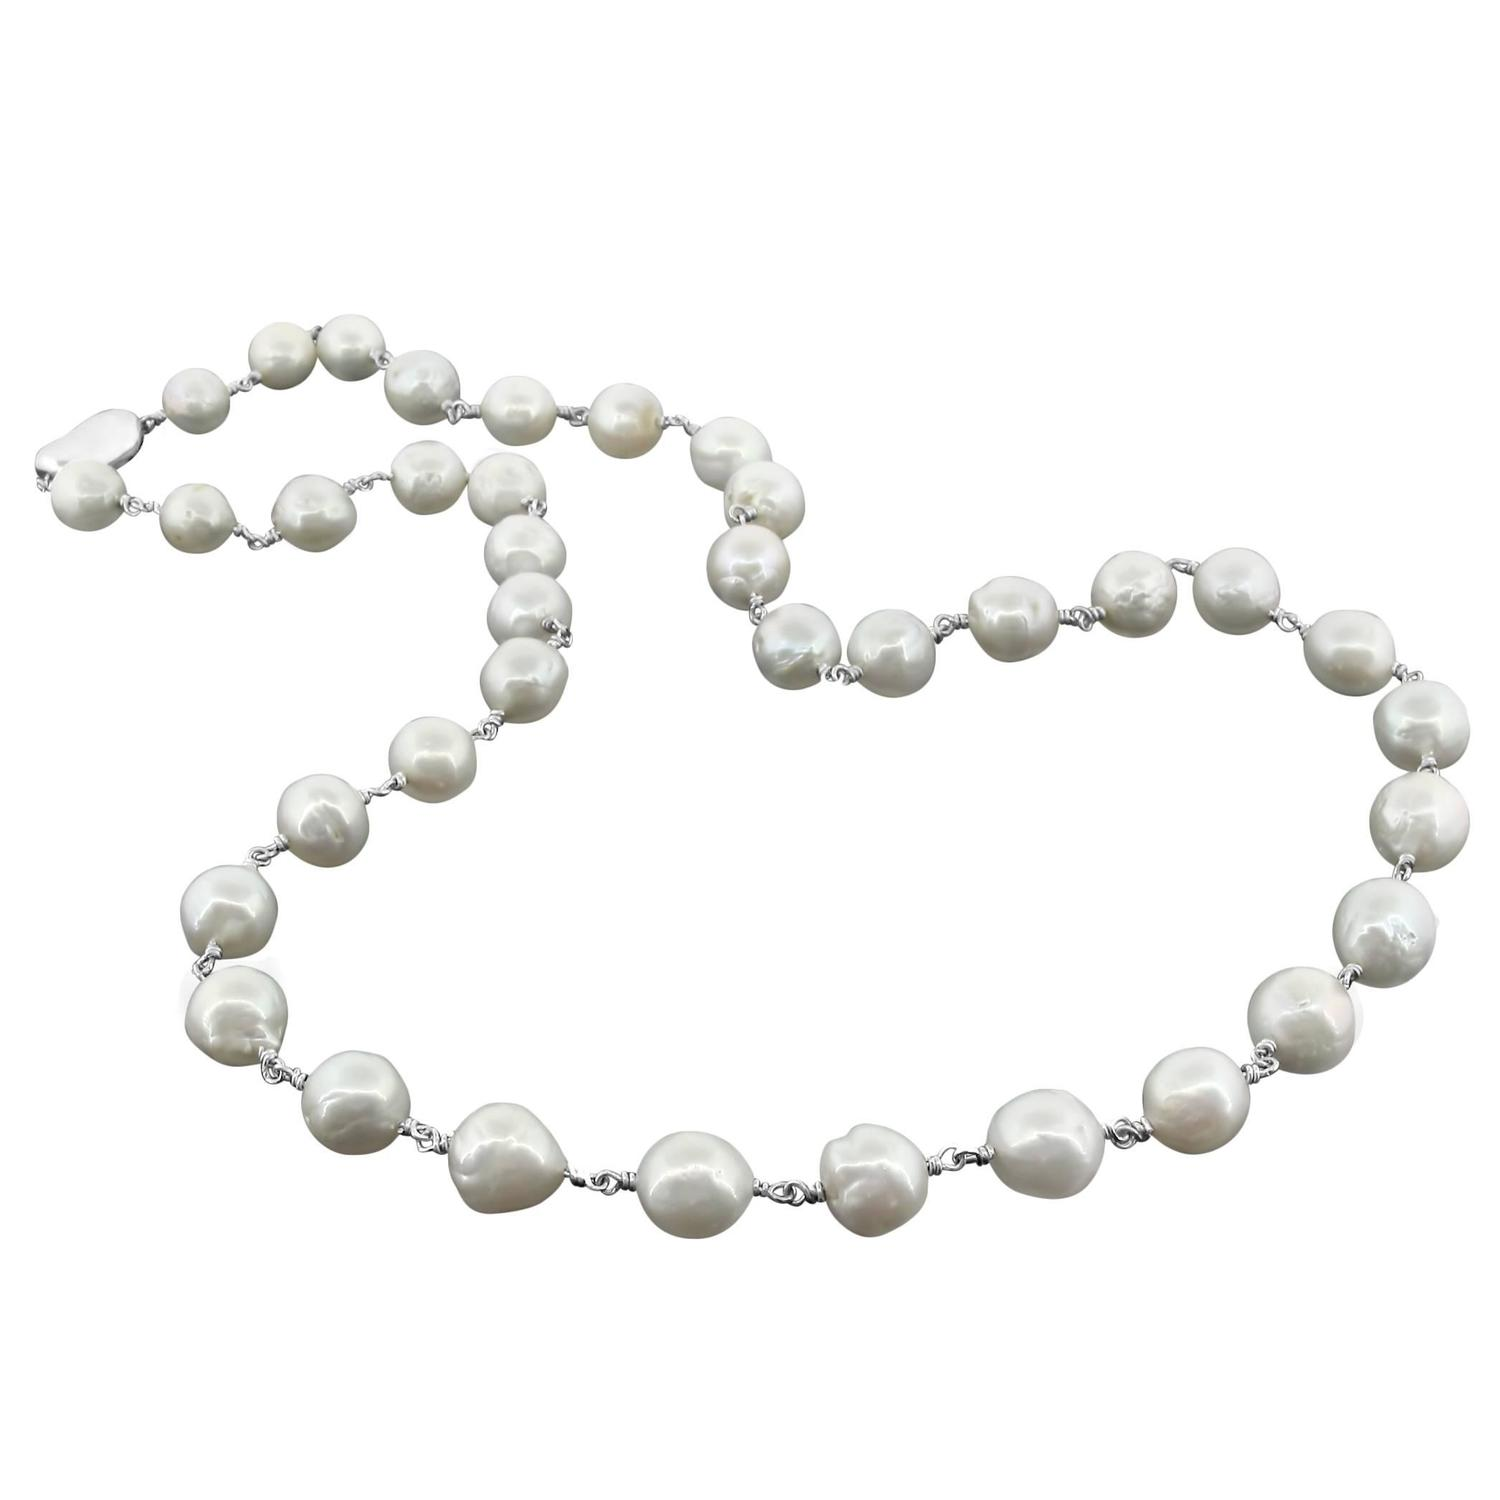 Freshwater Seed Pearl Sterling Silver Clasp Necklace For Sale At 1stdibs